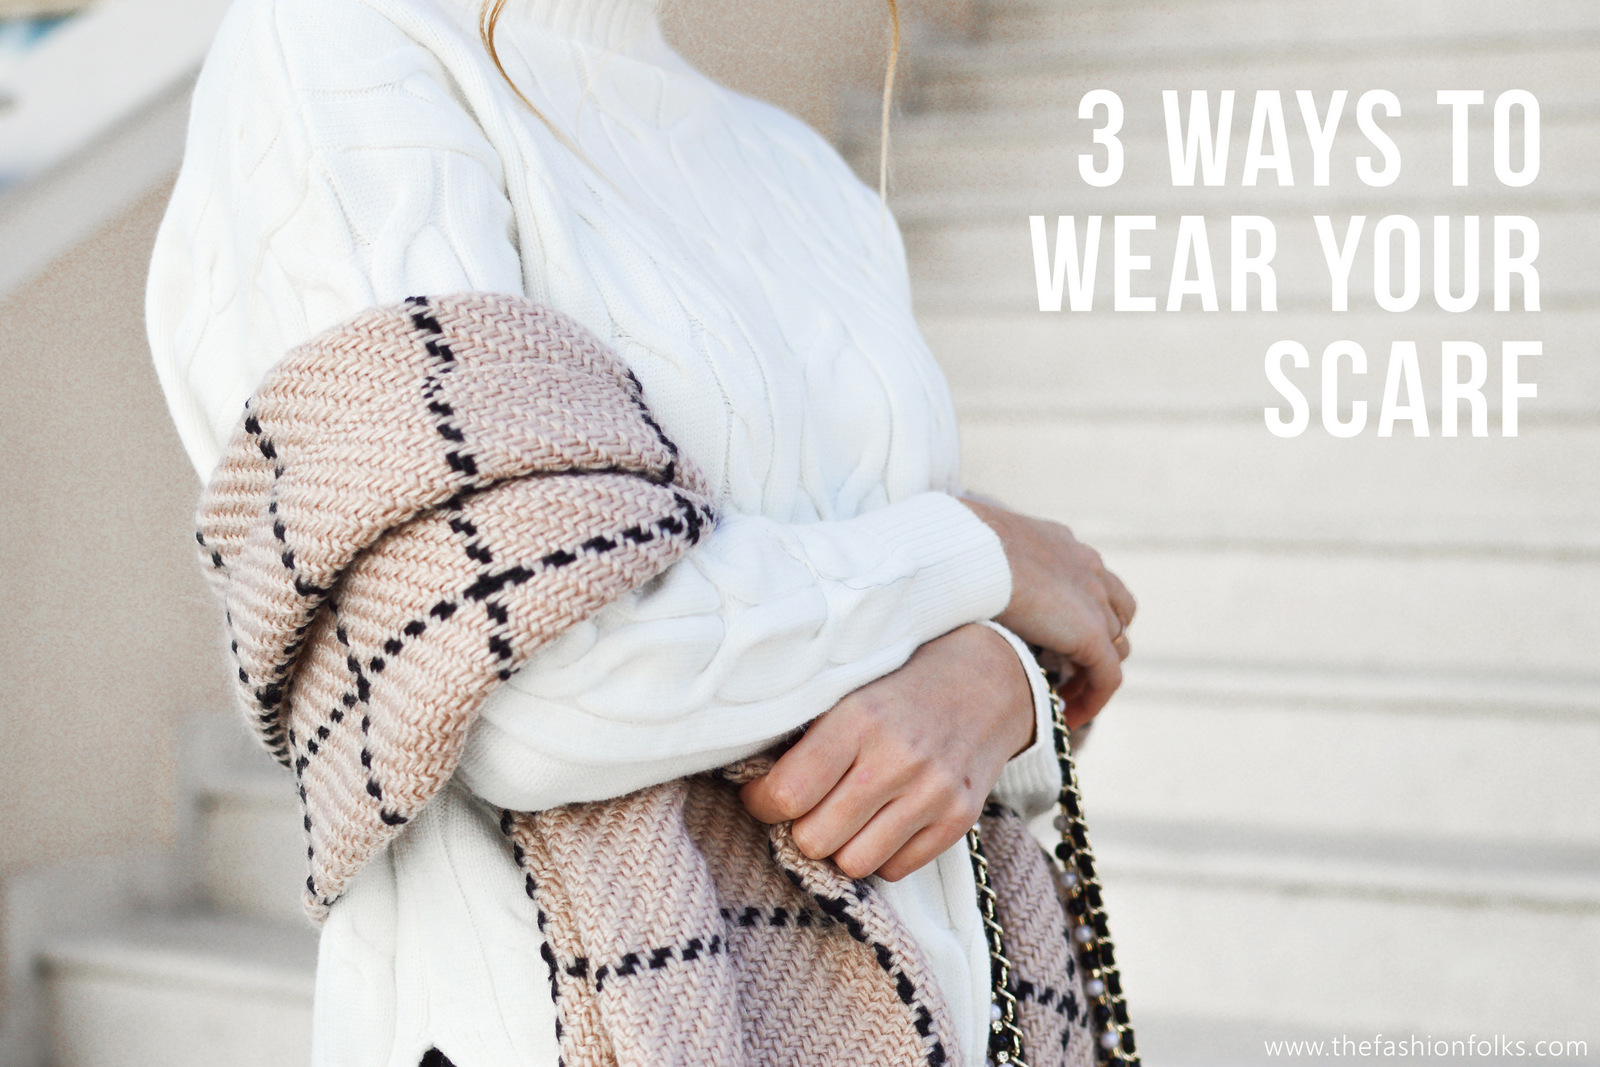 3 Ways To Wear Your Blanket Scarf 2018